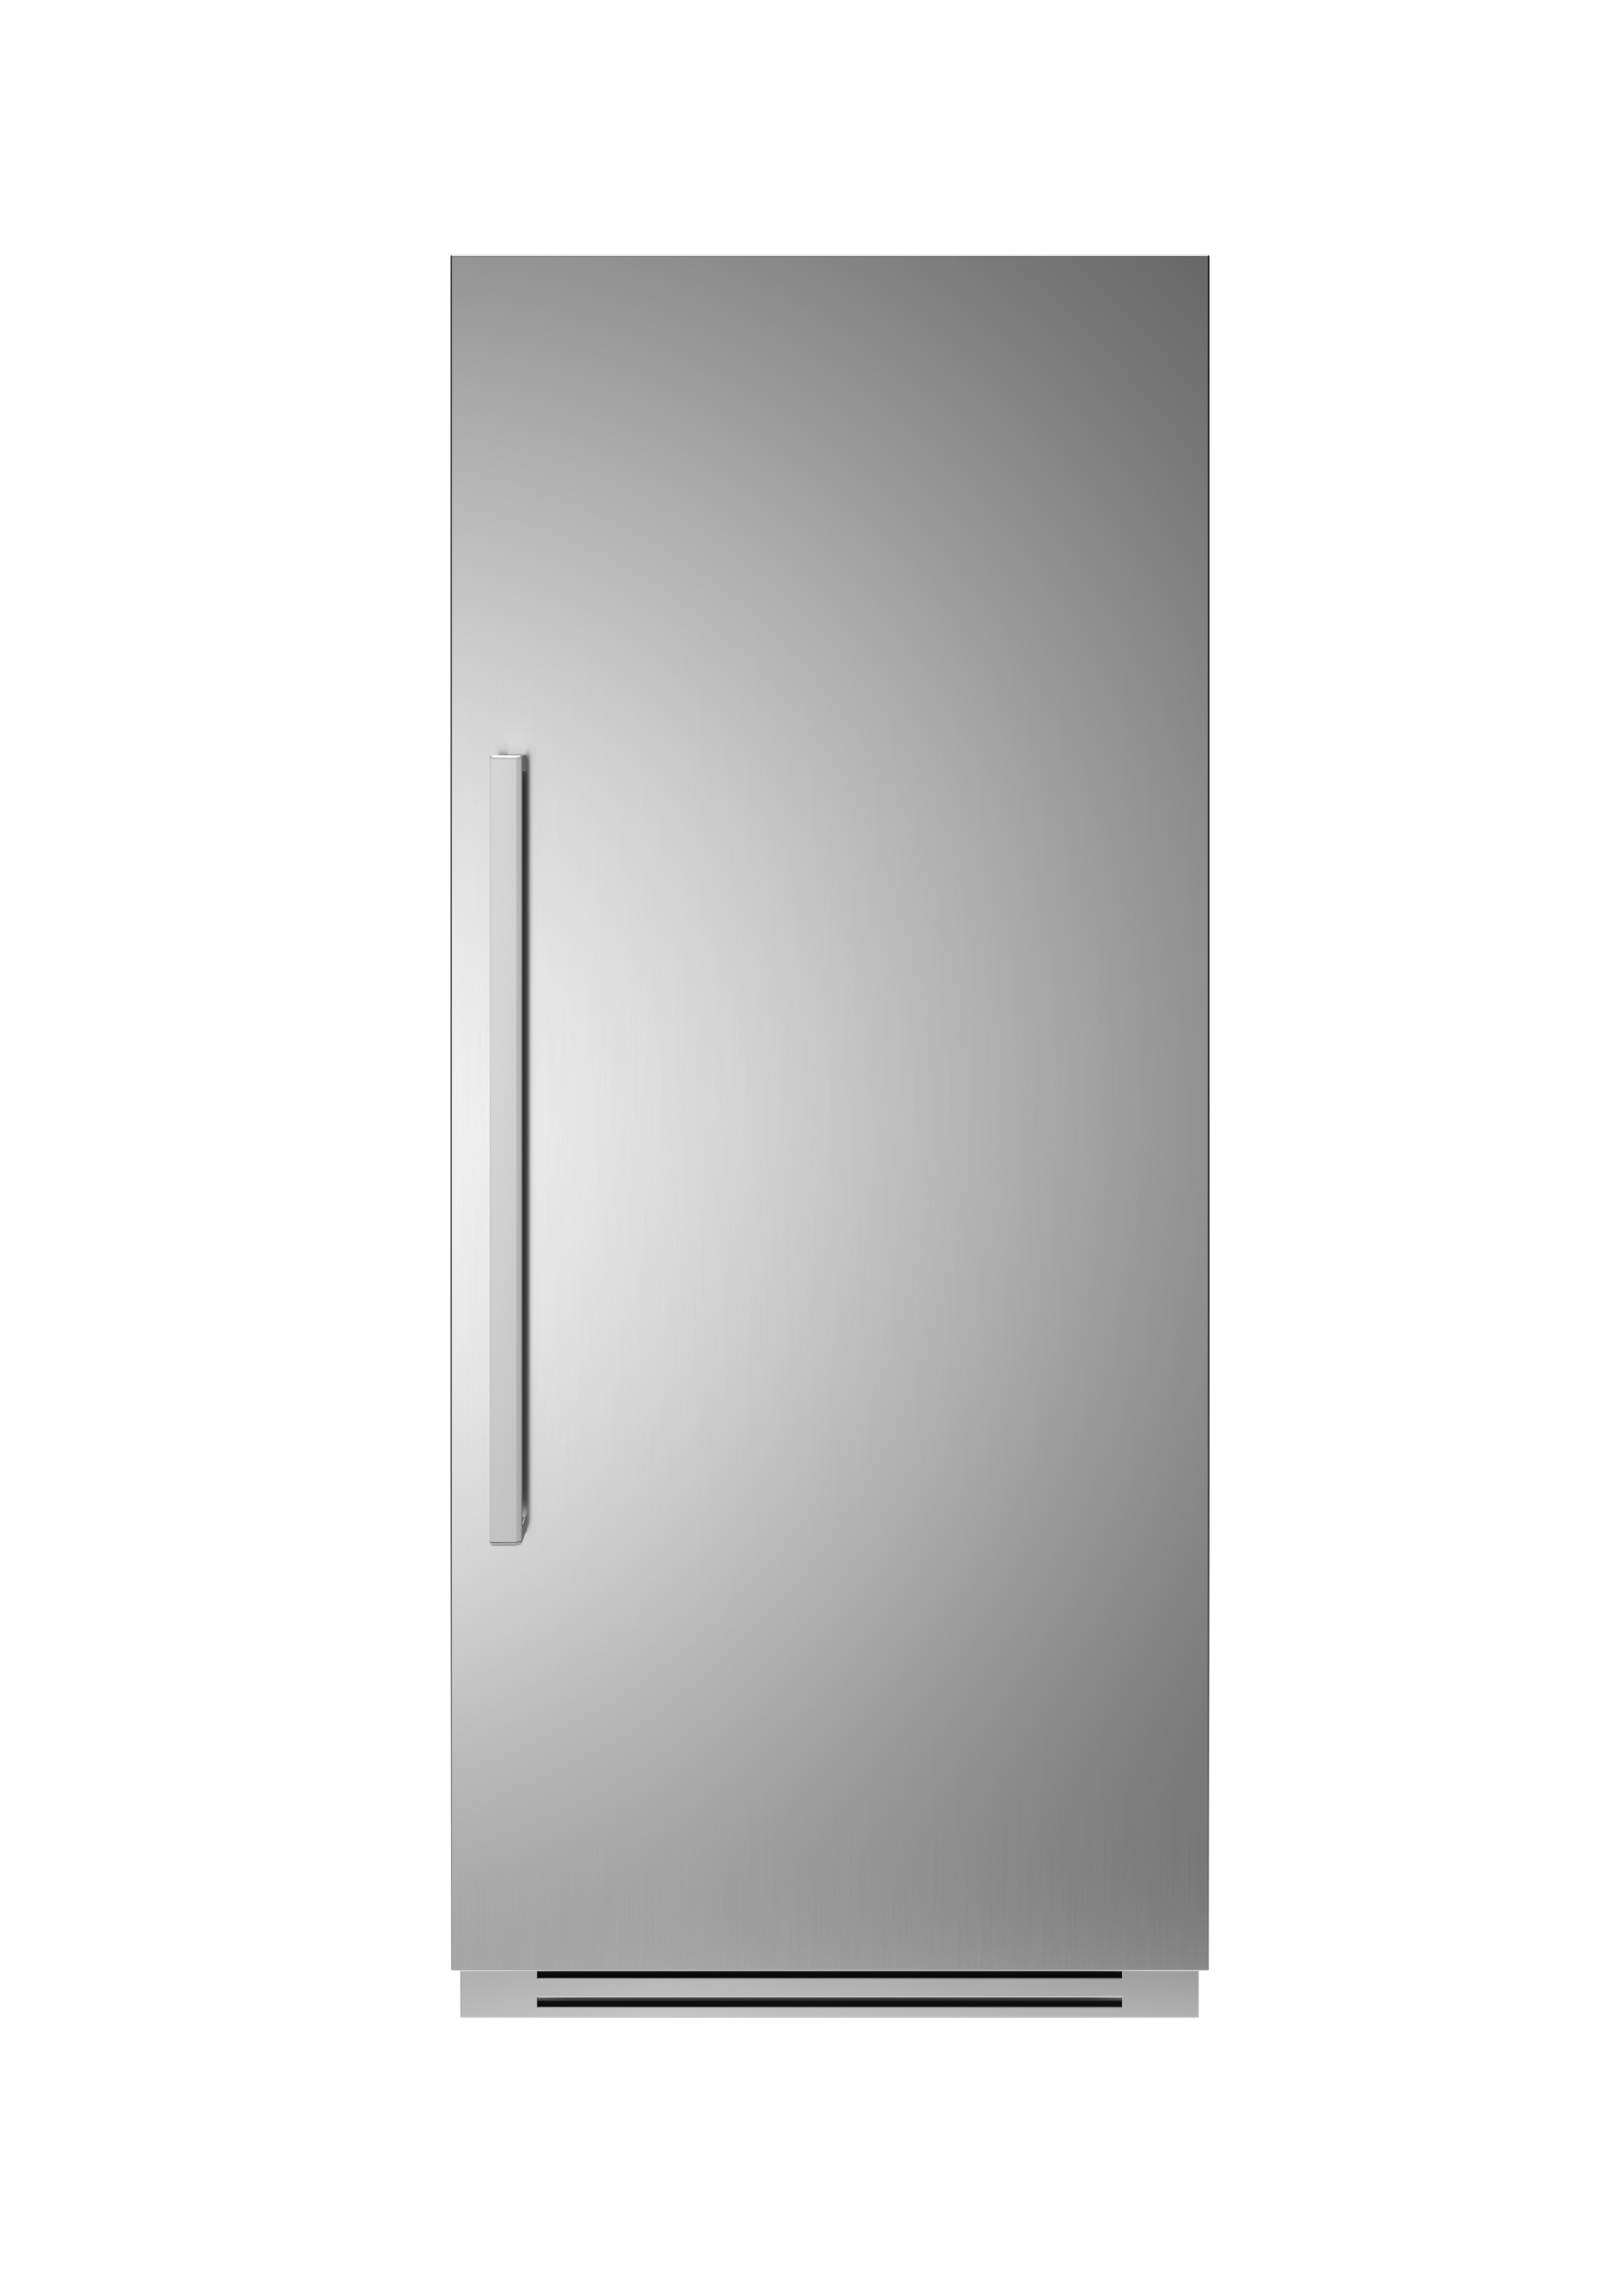 Bertazzoni Fridge REF36RCPIXR in Stainless Steel color showcased by Corbeil Electro Store